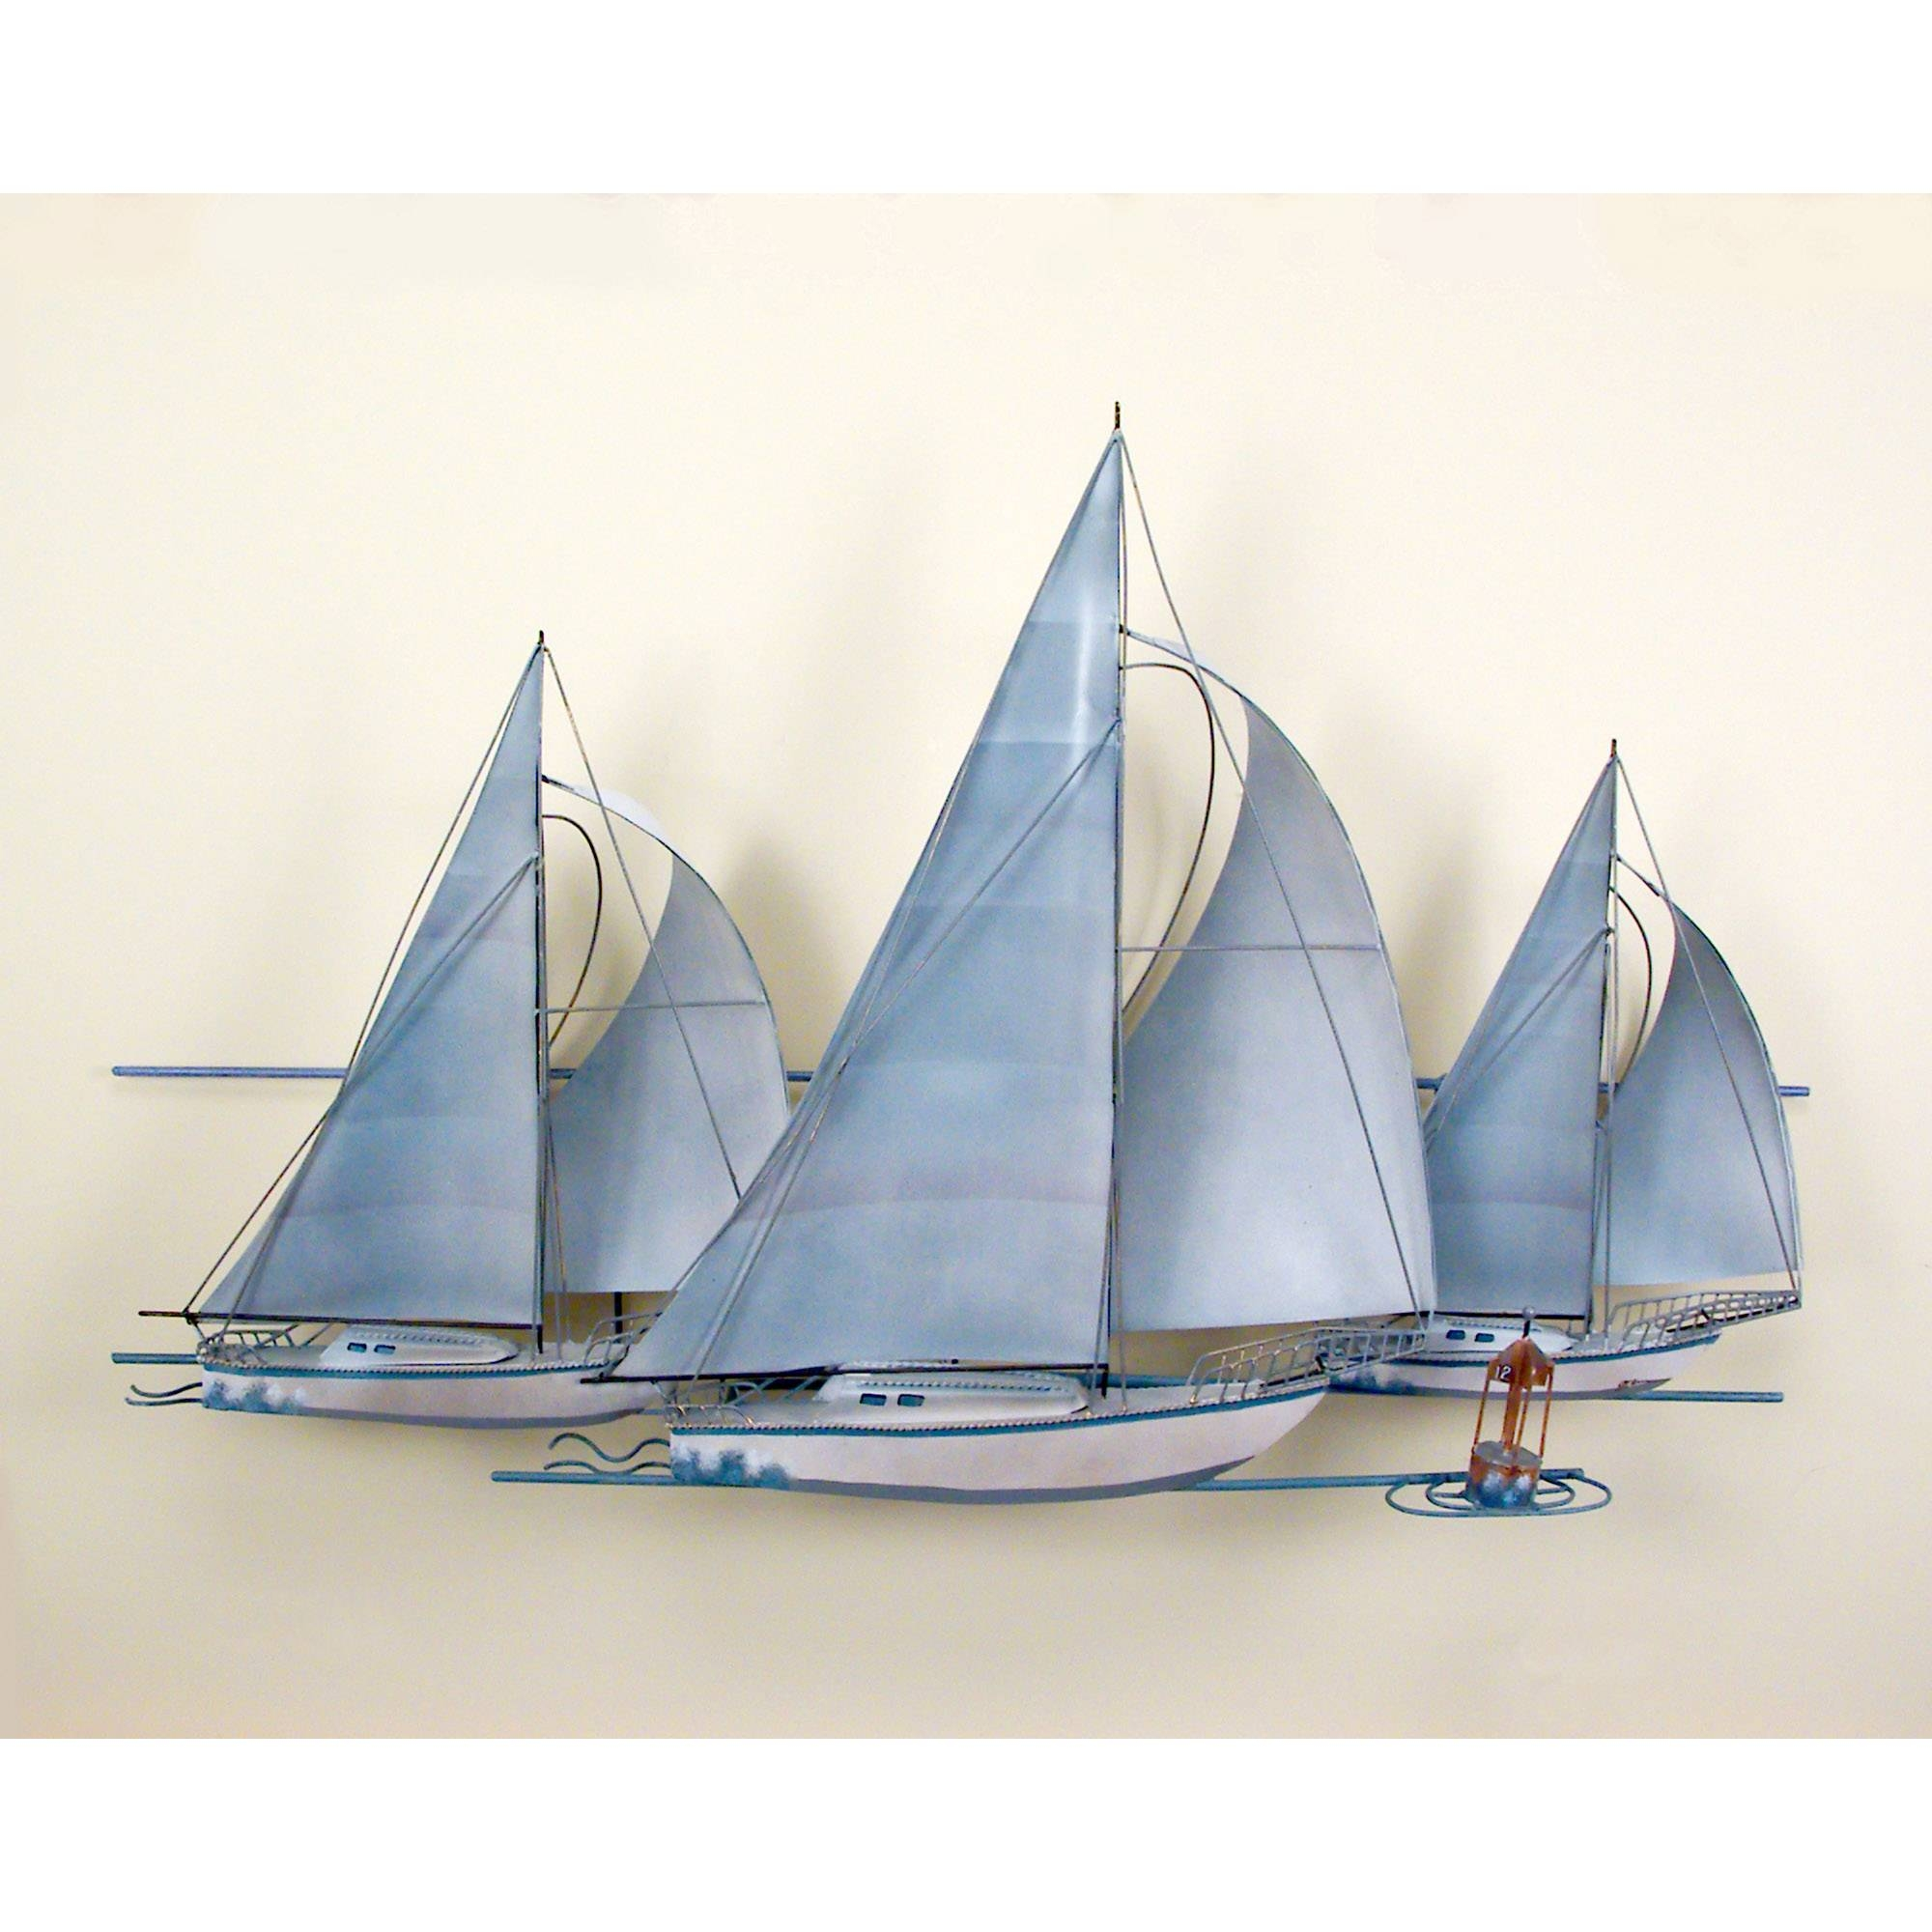 At The Races,three Sail Boats, Race, Wall Art, Wall Hanging Pertaining To Best And Newest Sailboat Metal Wall Art (Gallery 7 of 30)